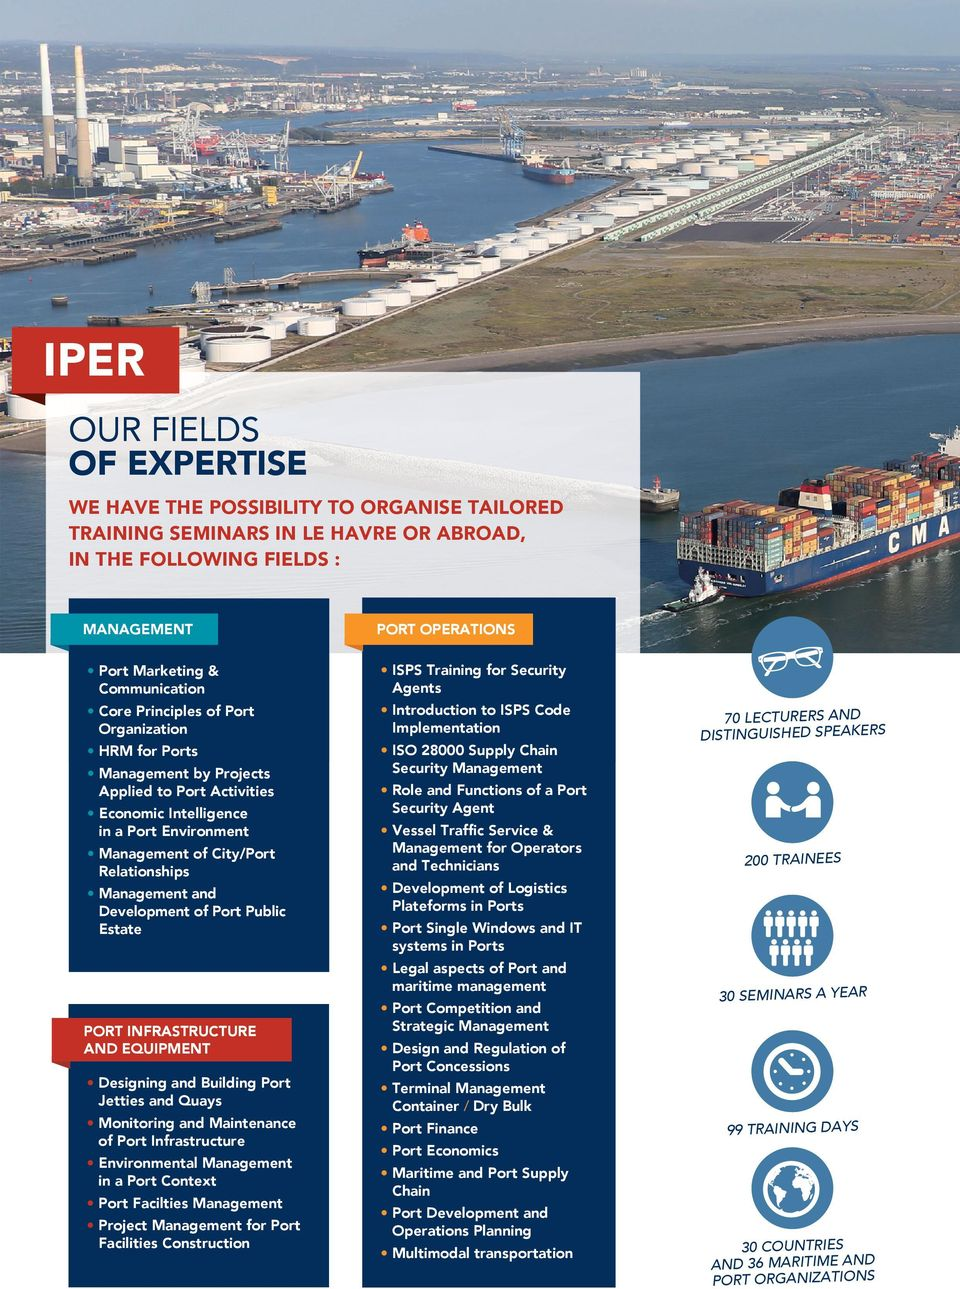 Port Public Estate PORT OPERATIONS ISPS Training for Security Agents Introduction to ISPS Code Implementation ISO 28000 Supply Chain Security Management Role and Functions of a Port Security Agent